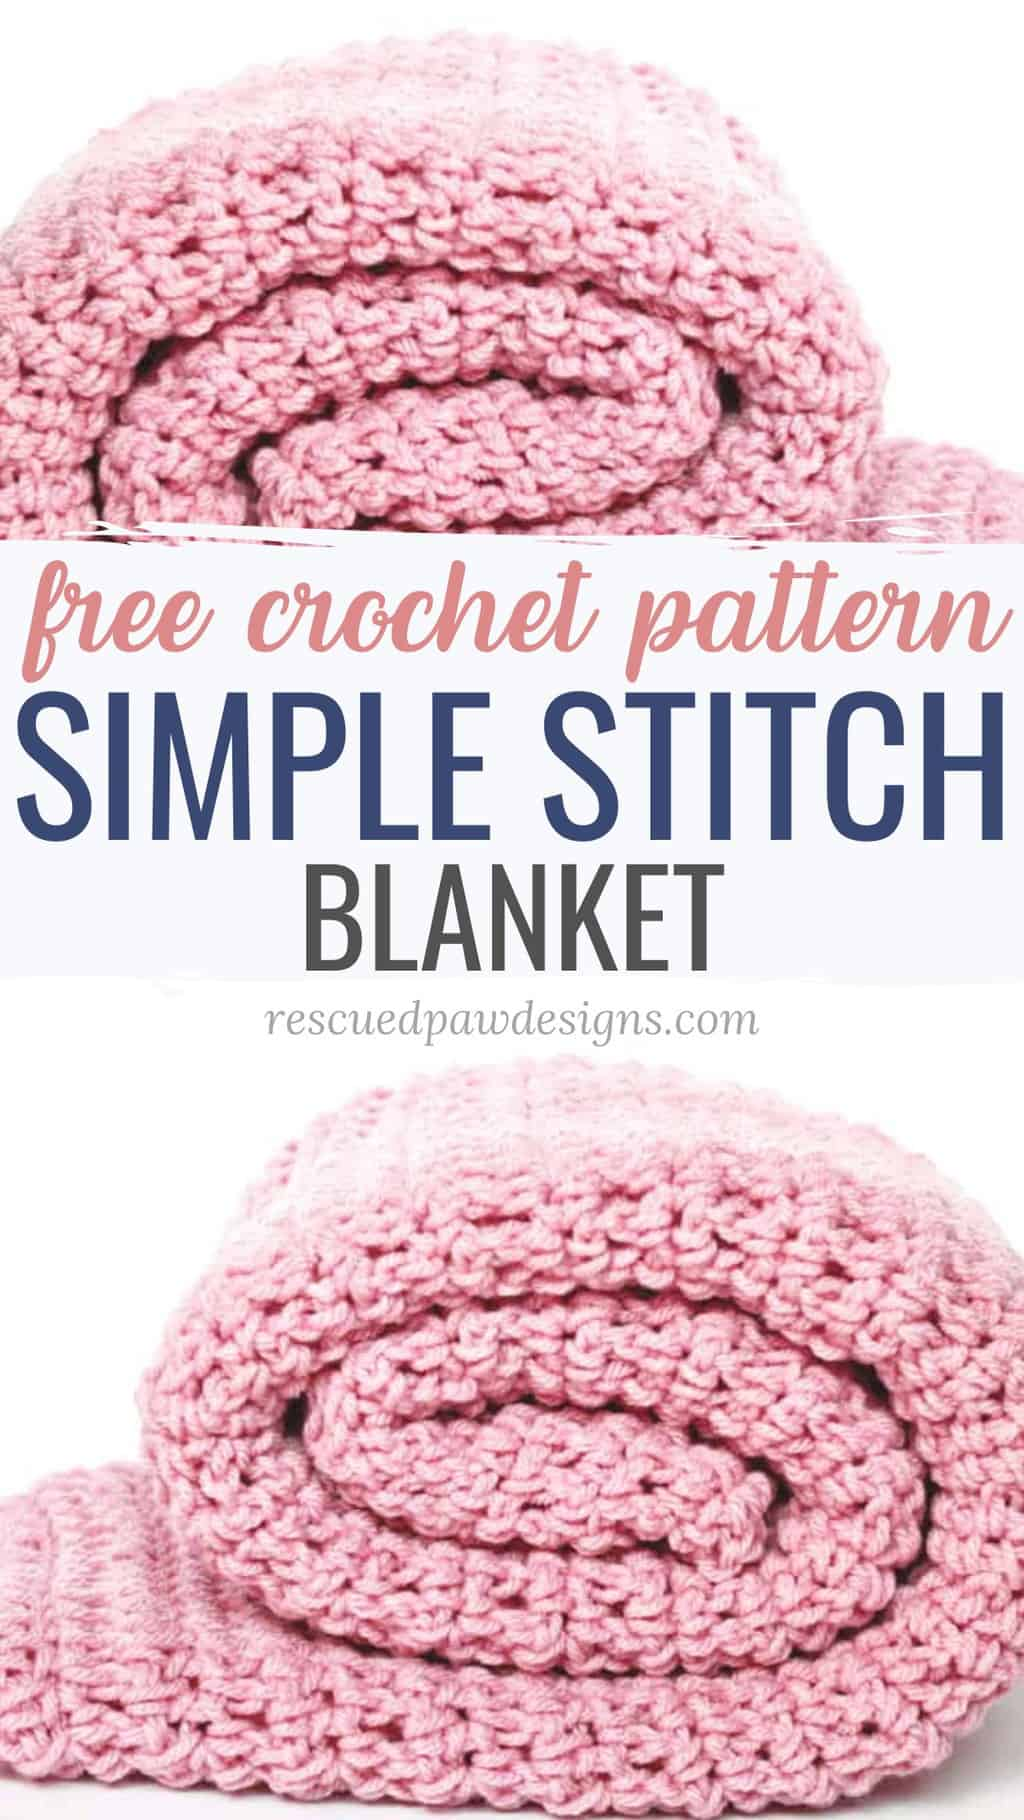 simple stitch crochet blanket